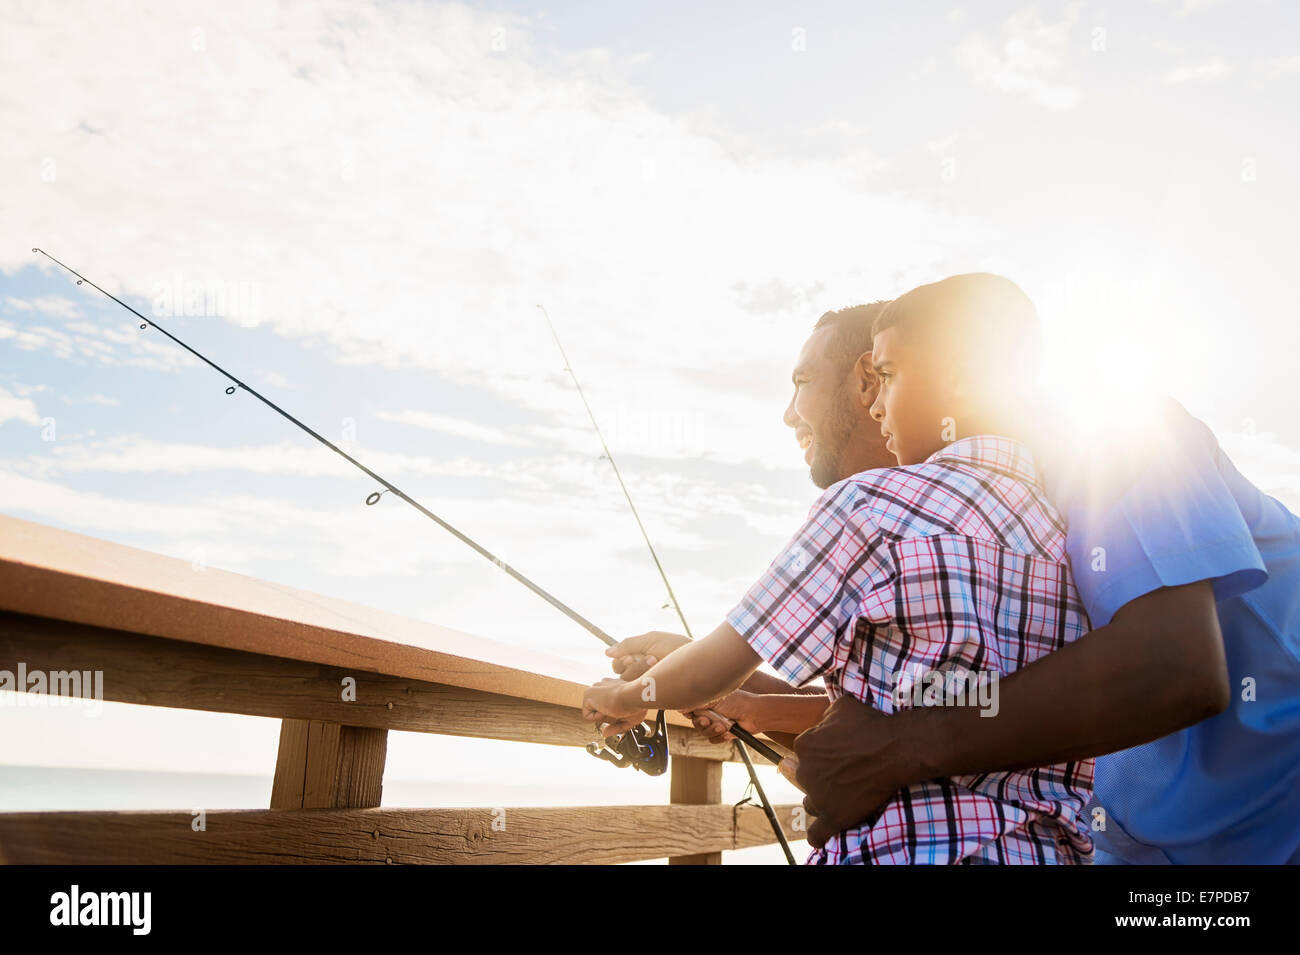 Father and son (10-11) fishing - Stock Image